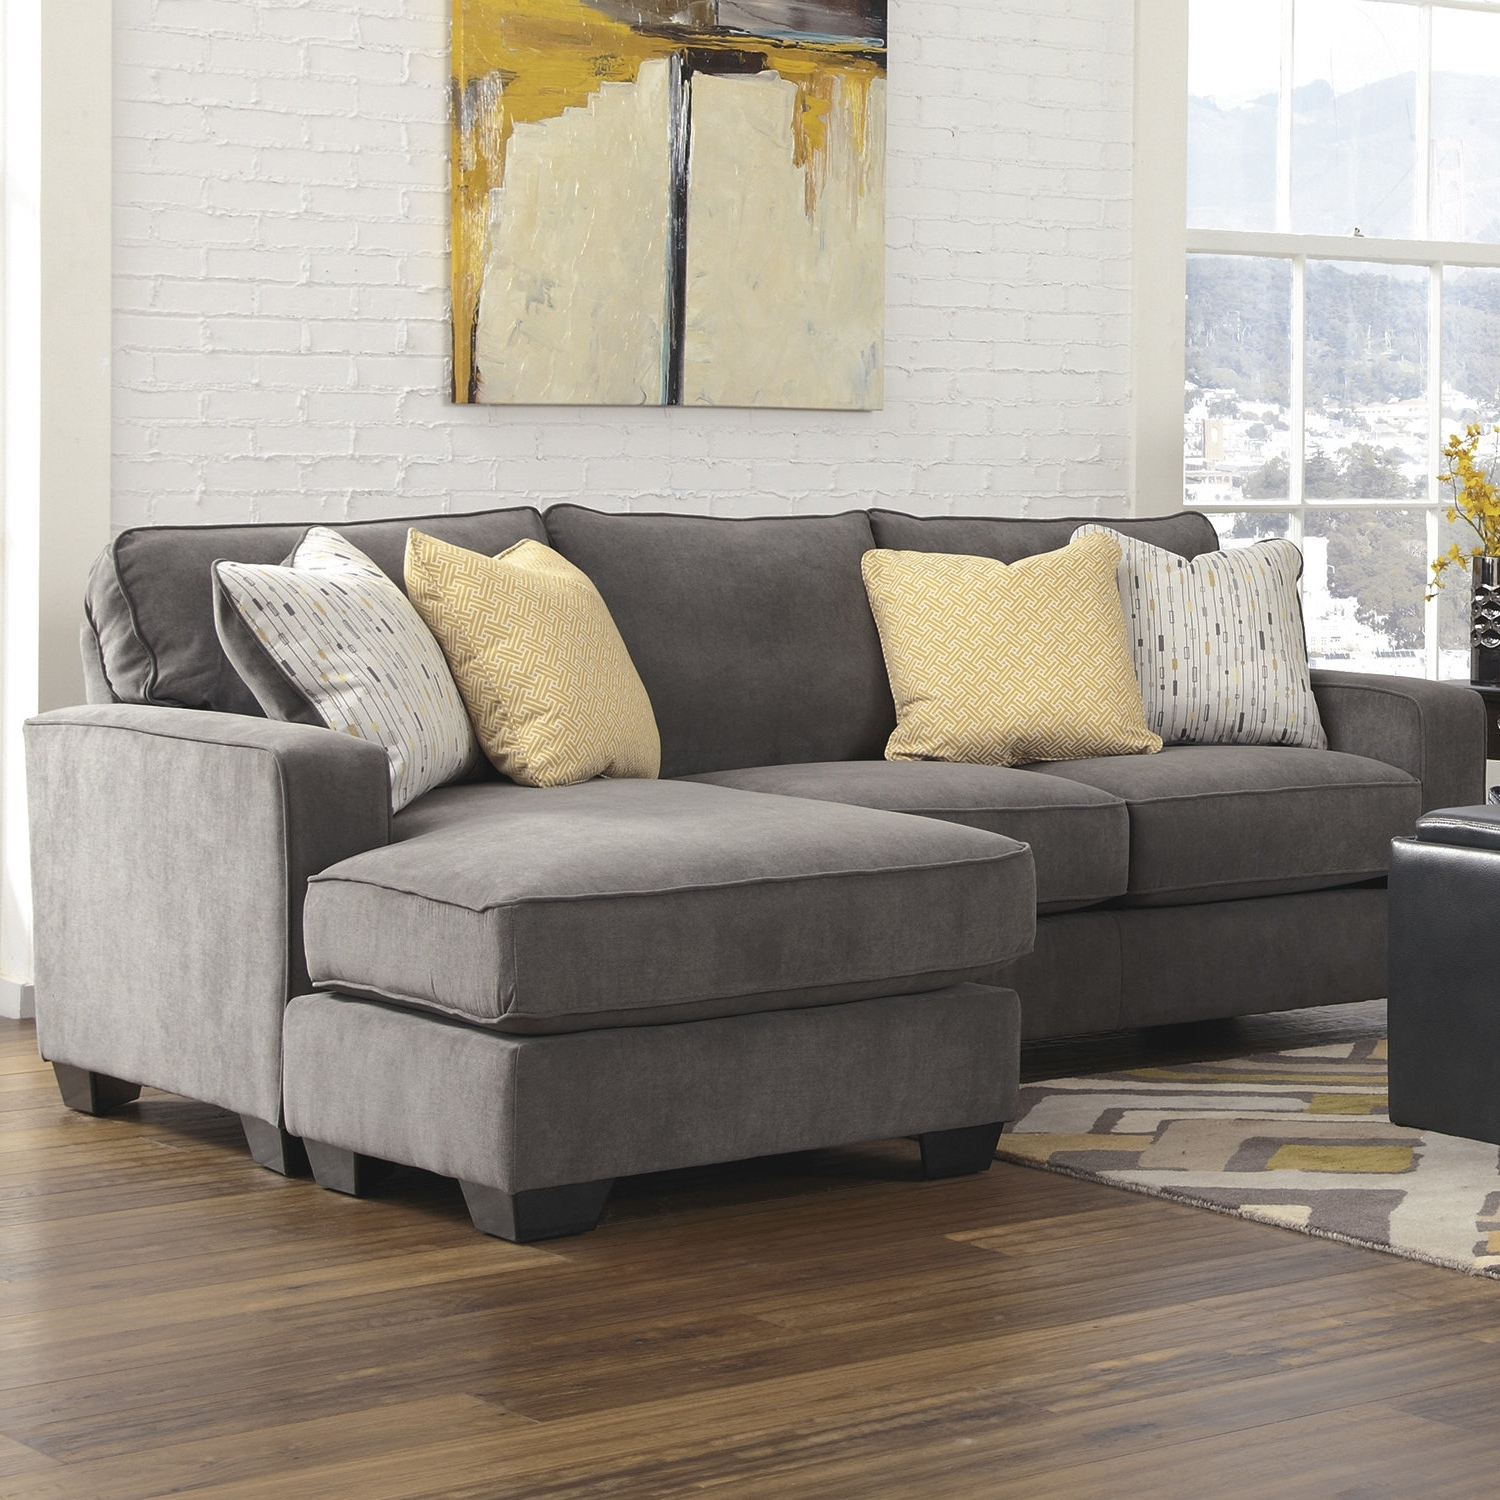 Sectional Sofas For Latest On Sale Sectional Sofas (View 15 of 20)